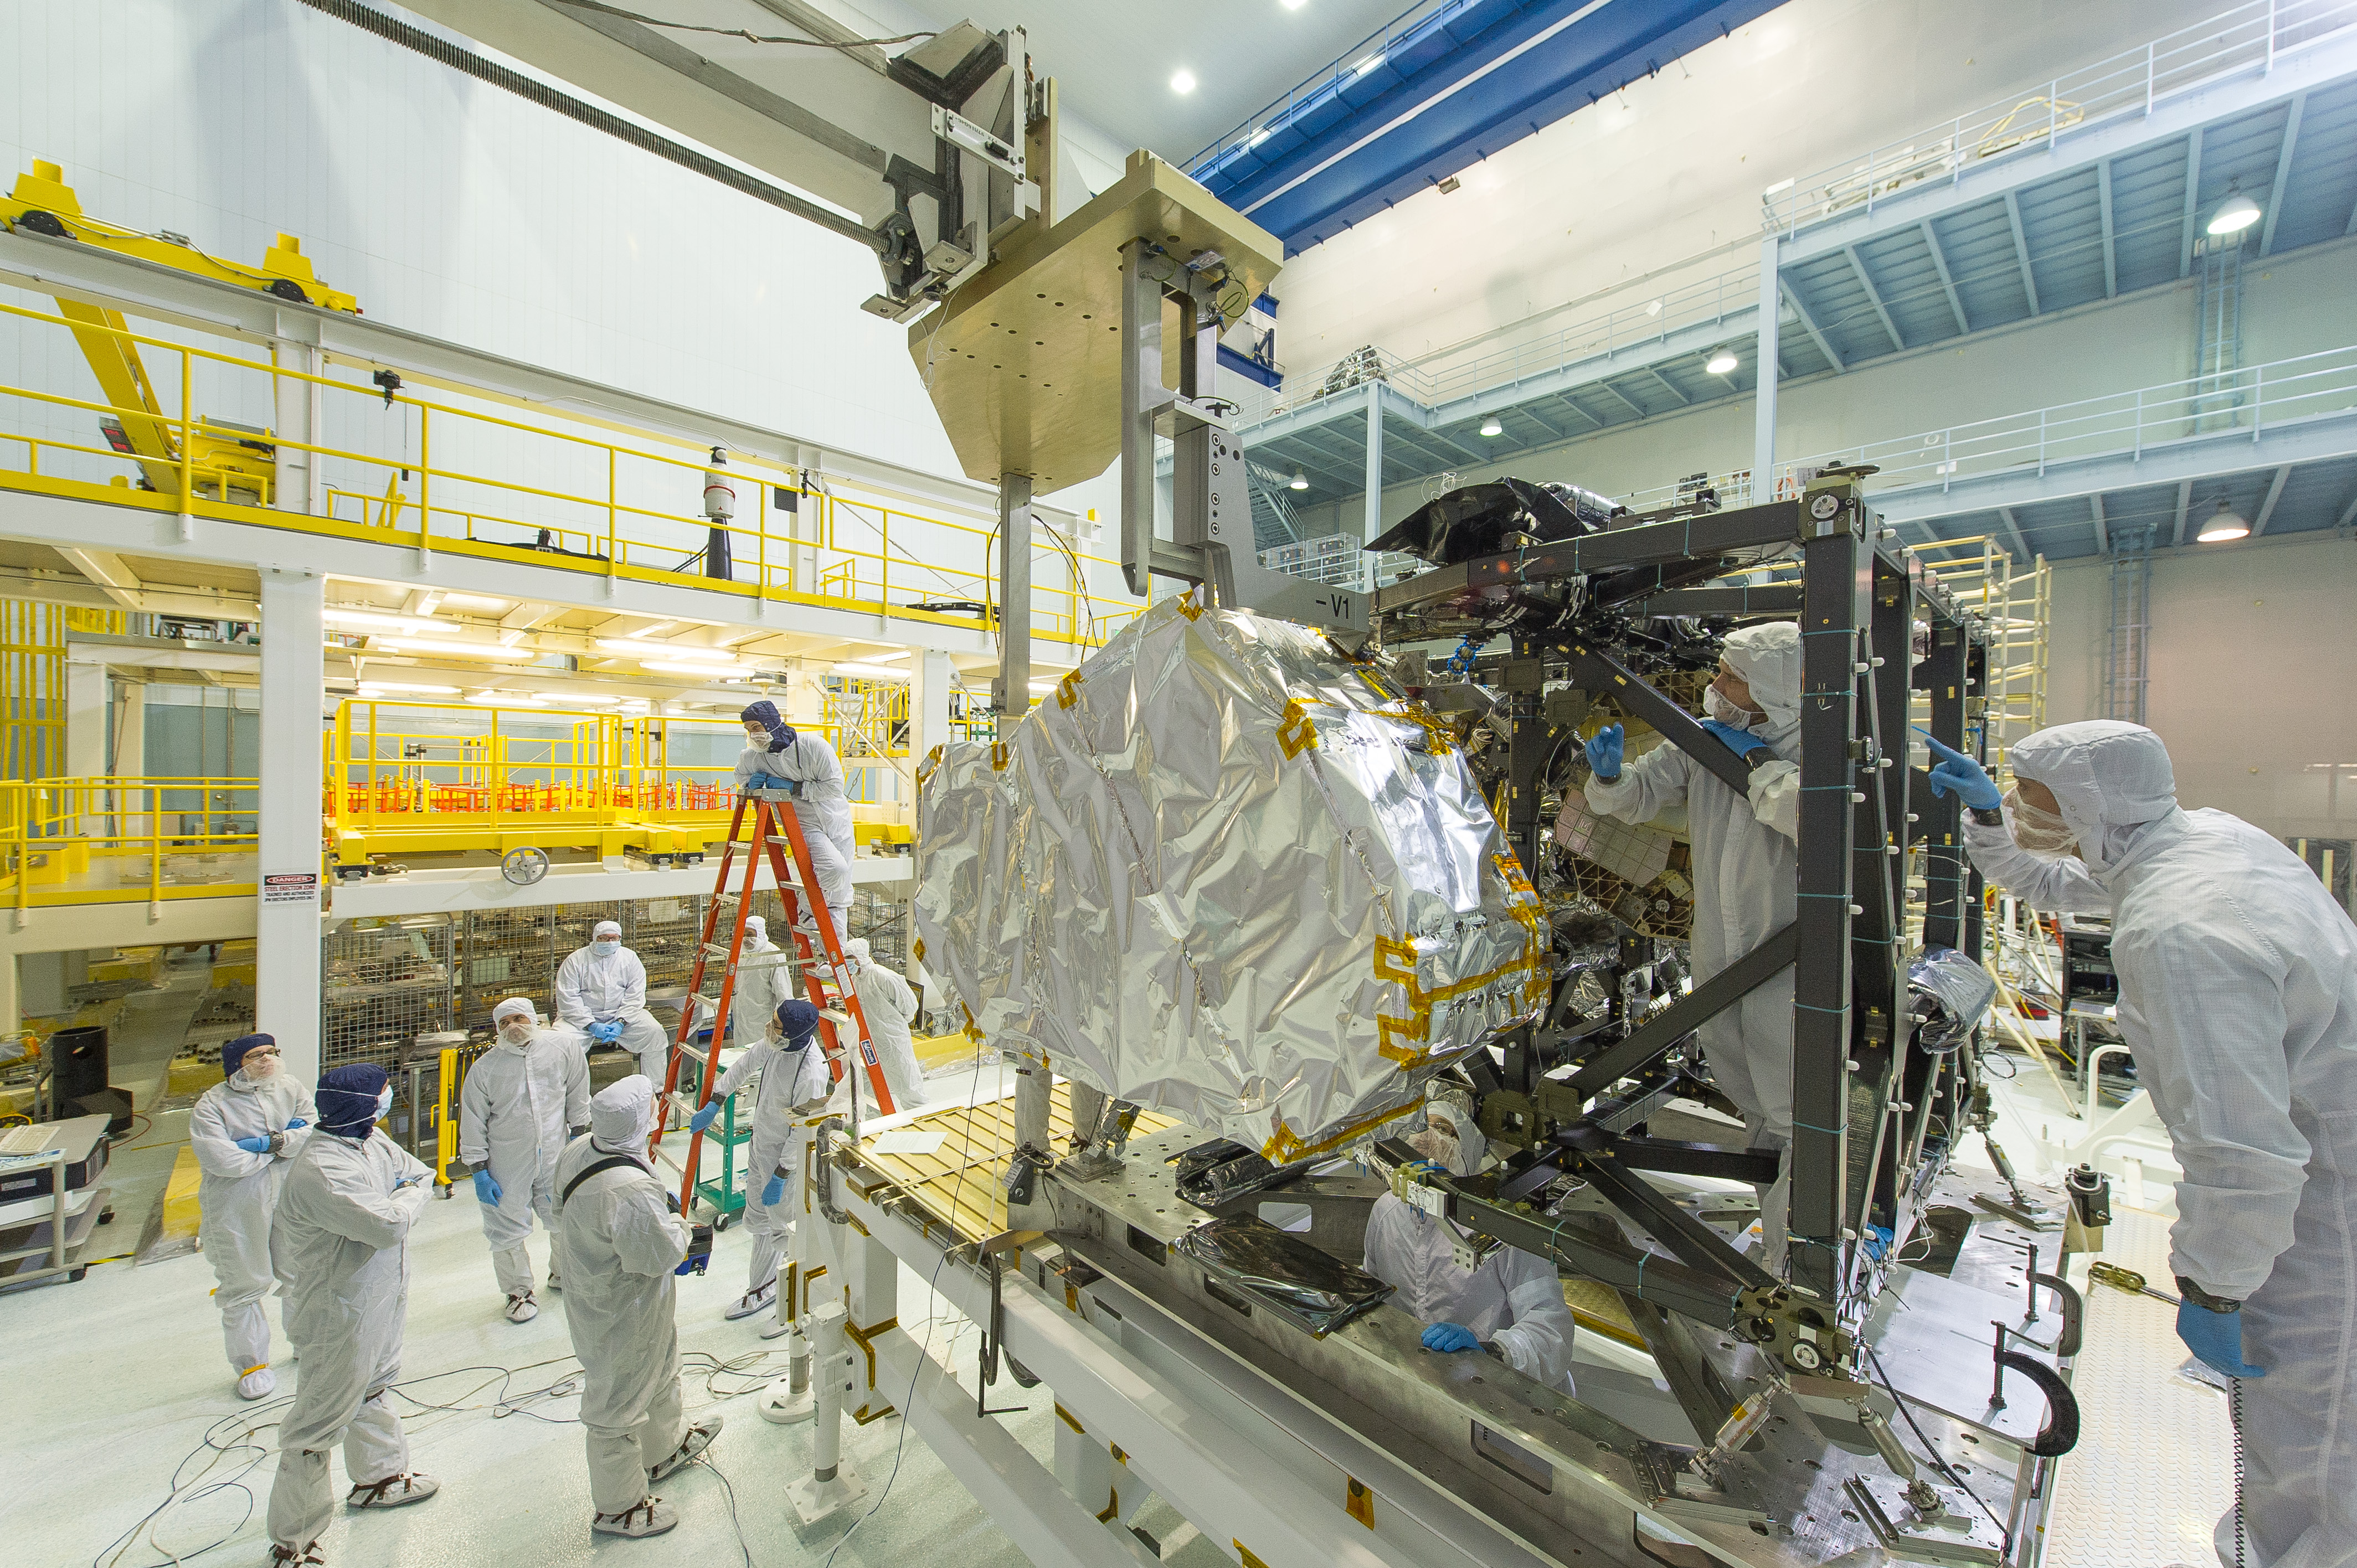 James Webb Space Telescopes Near Infrared Spectrograph Installed Nasa Video Of A Hovering Lander